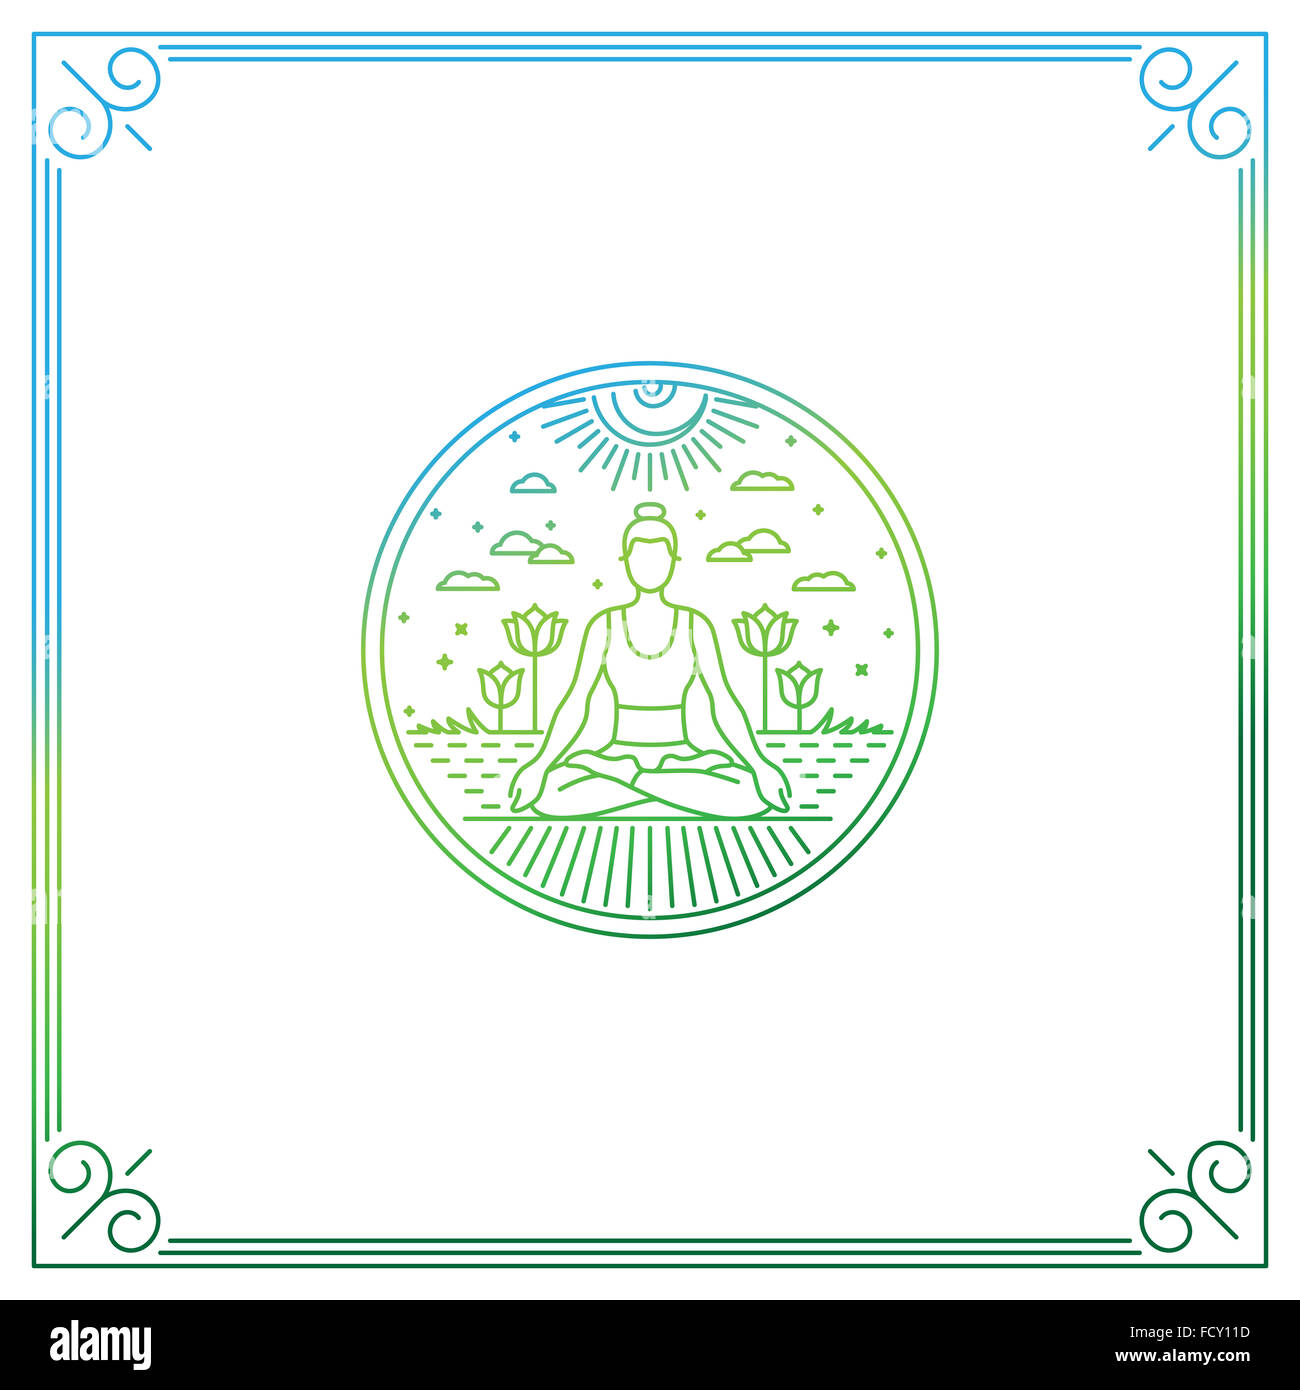 Illustration in trendy linear style - woman in lotus pose - logo or print concept for yoga studio or class - Stock Image